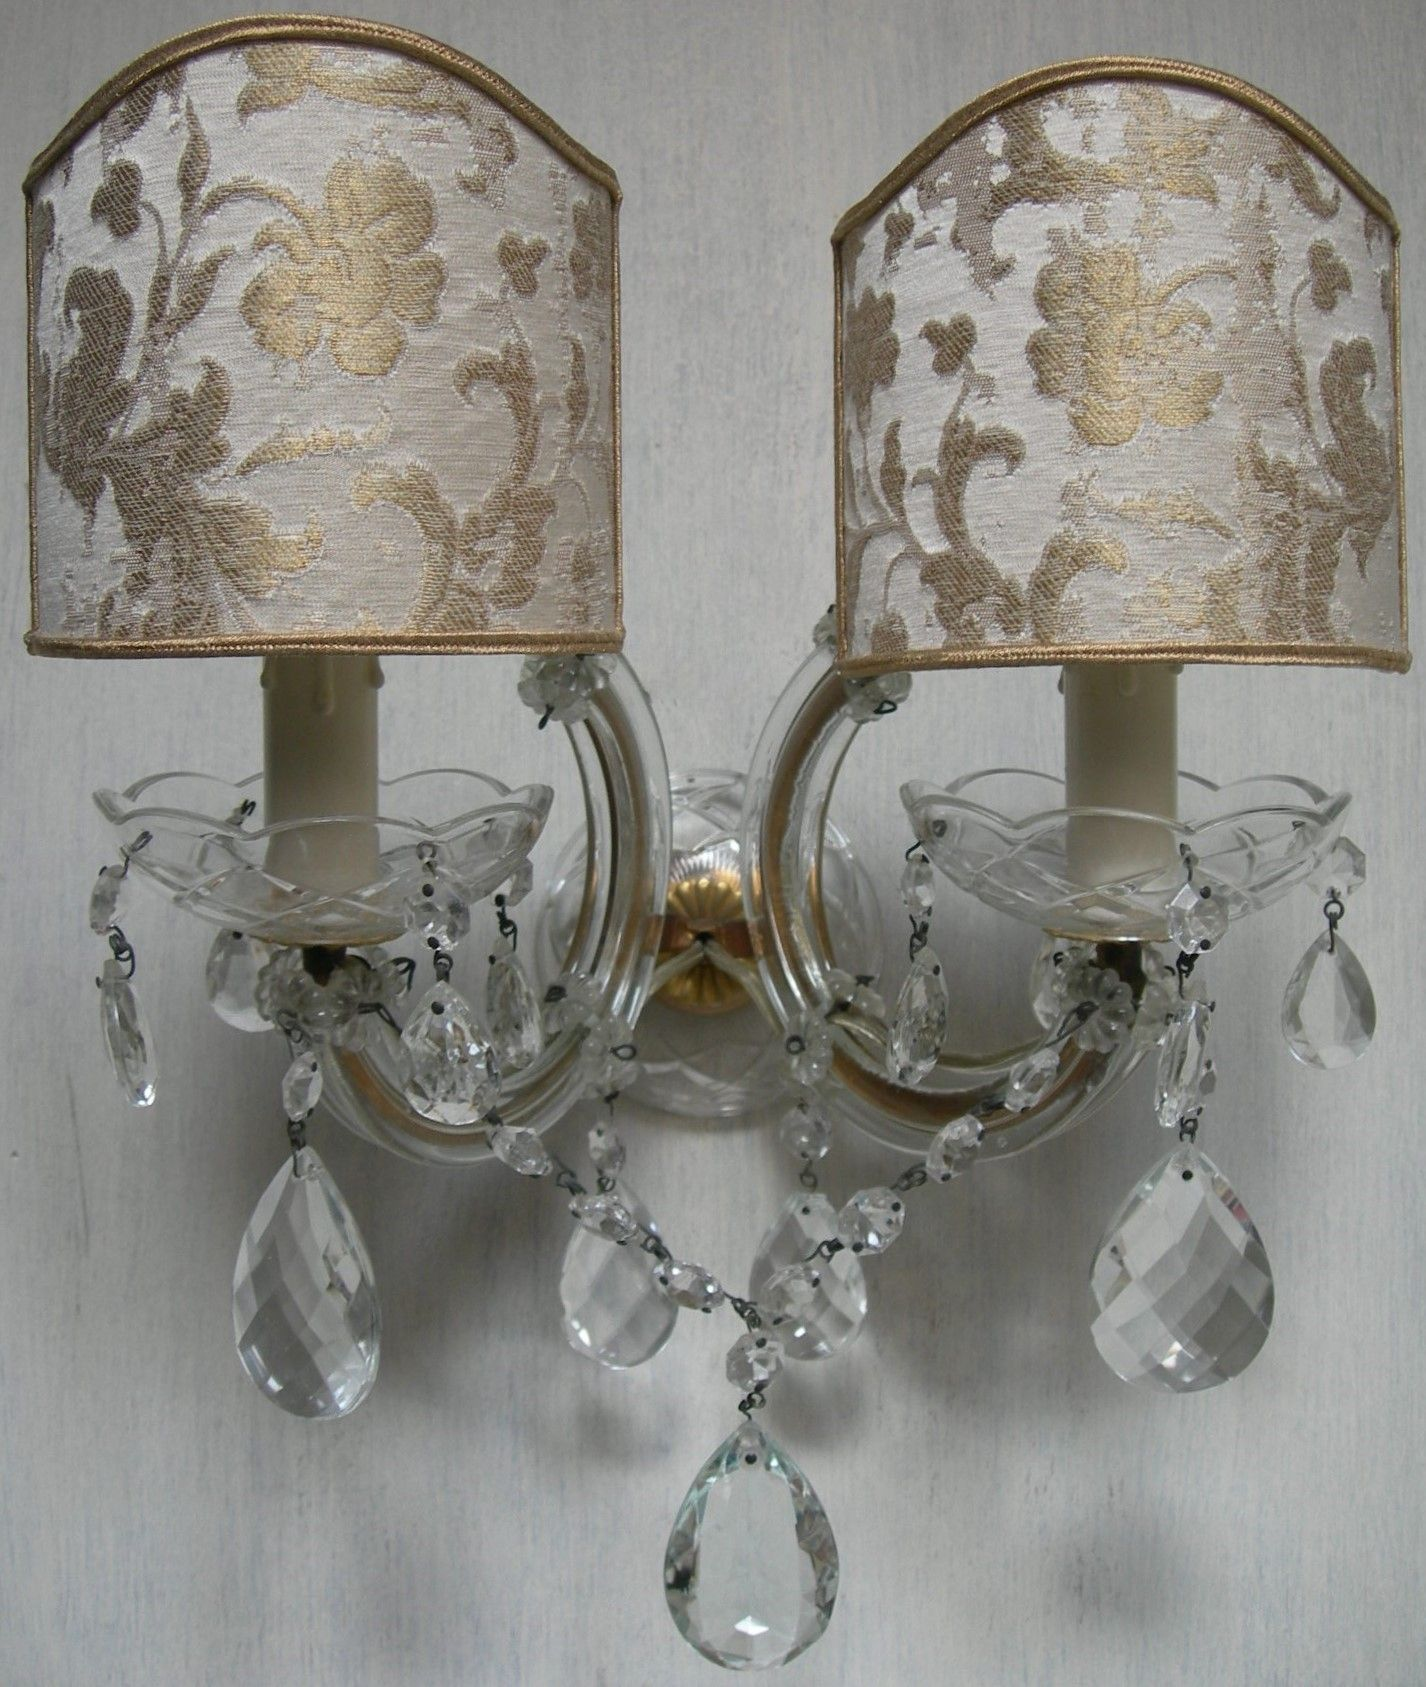 Pair of Italian Antique Maria Theresa Crystal Wall Sconces with